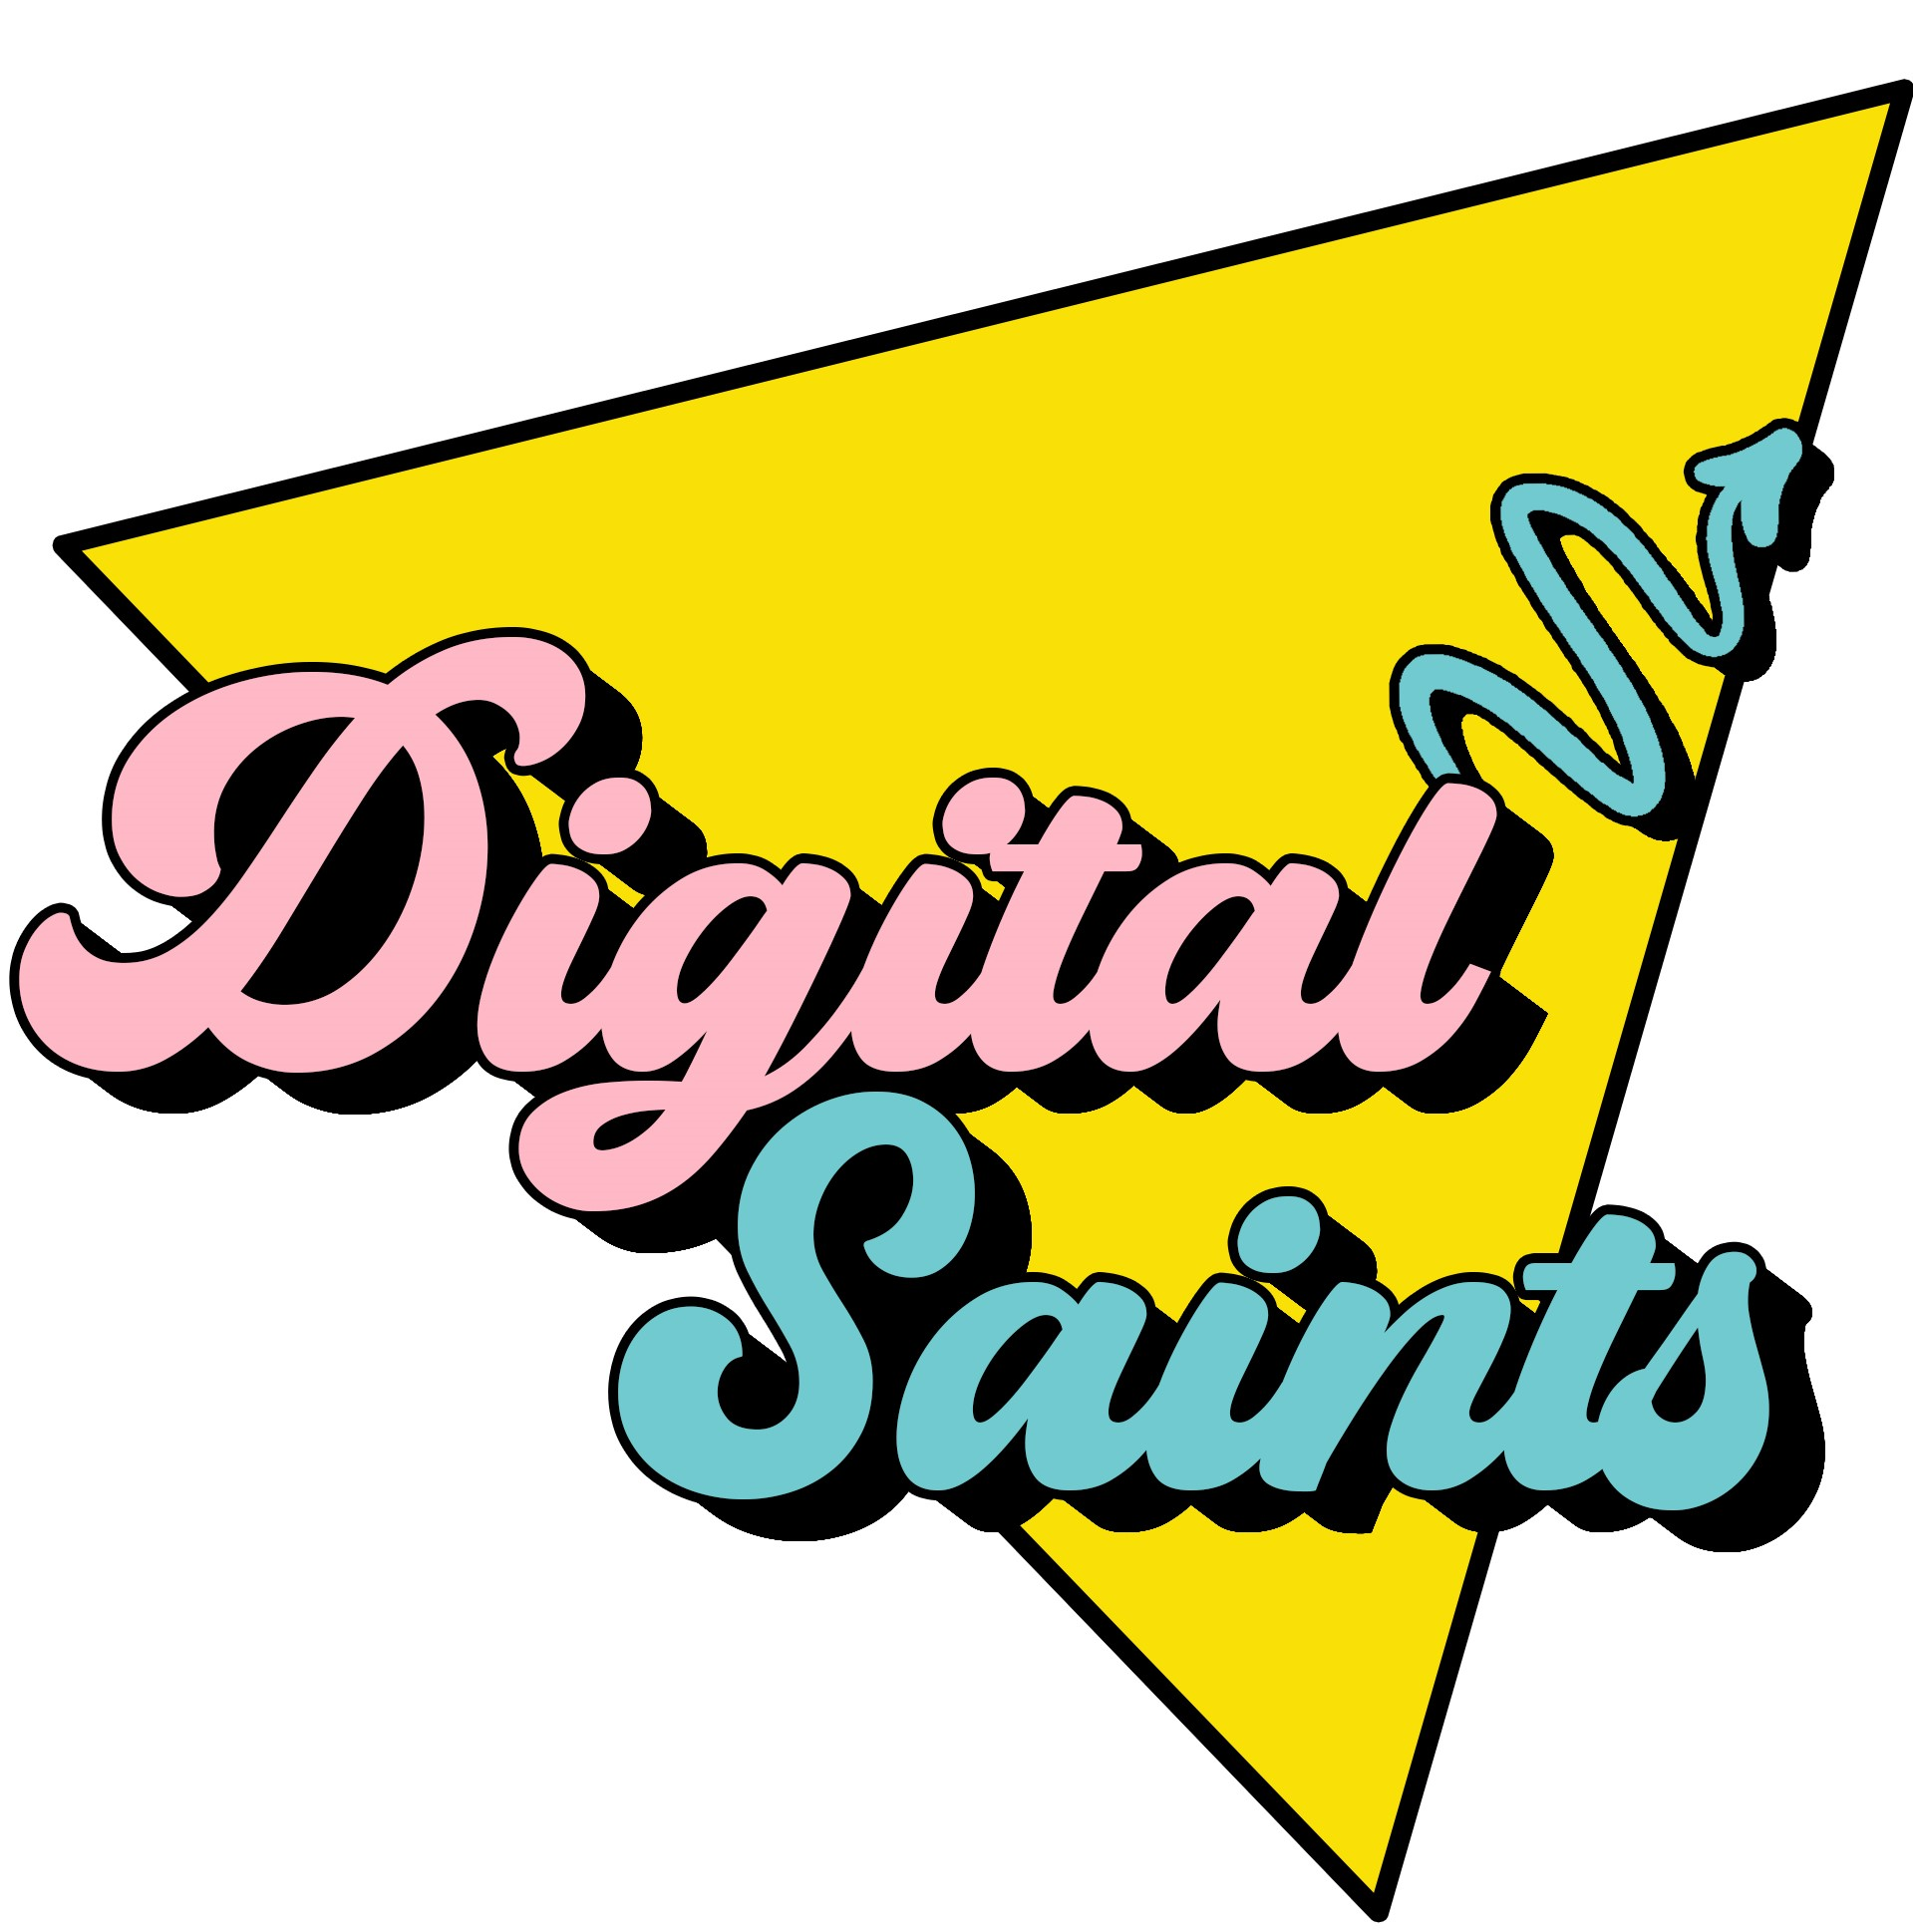 We Are Digital Saints